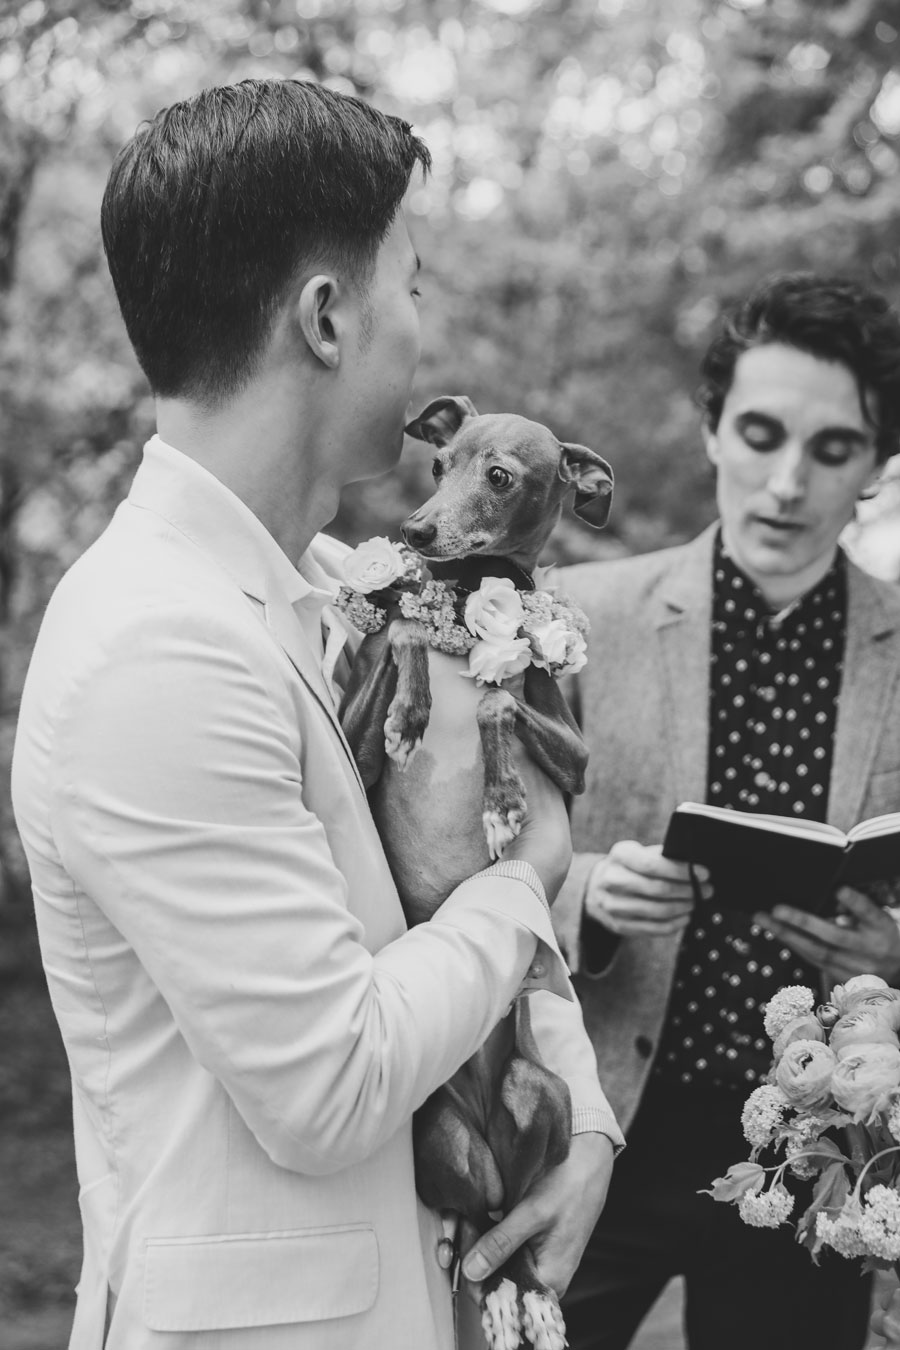 Central Park Wedding with dog